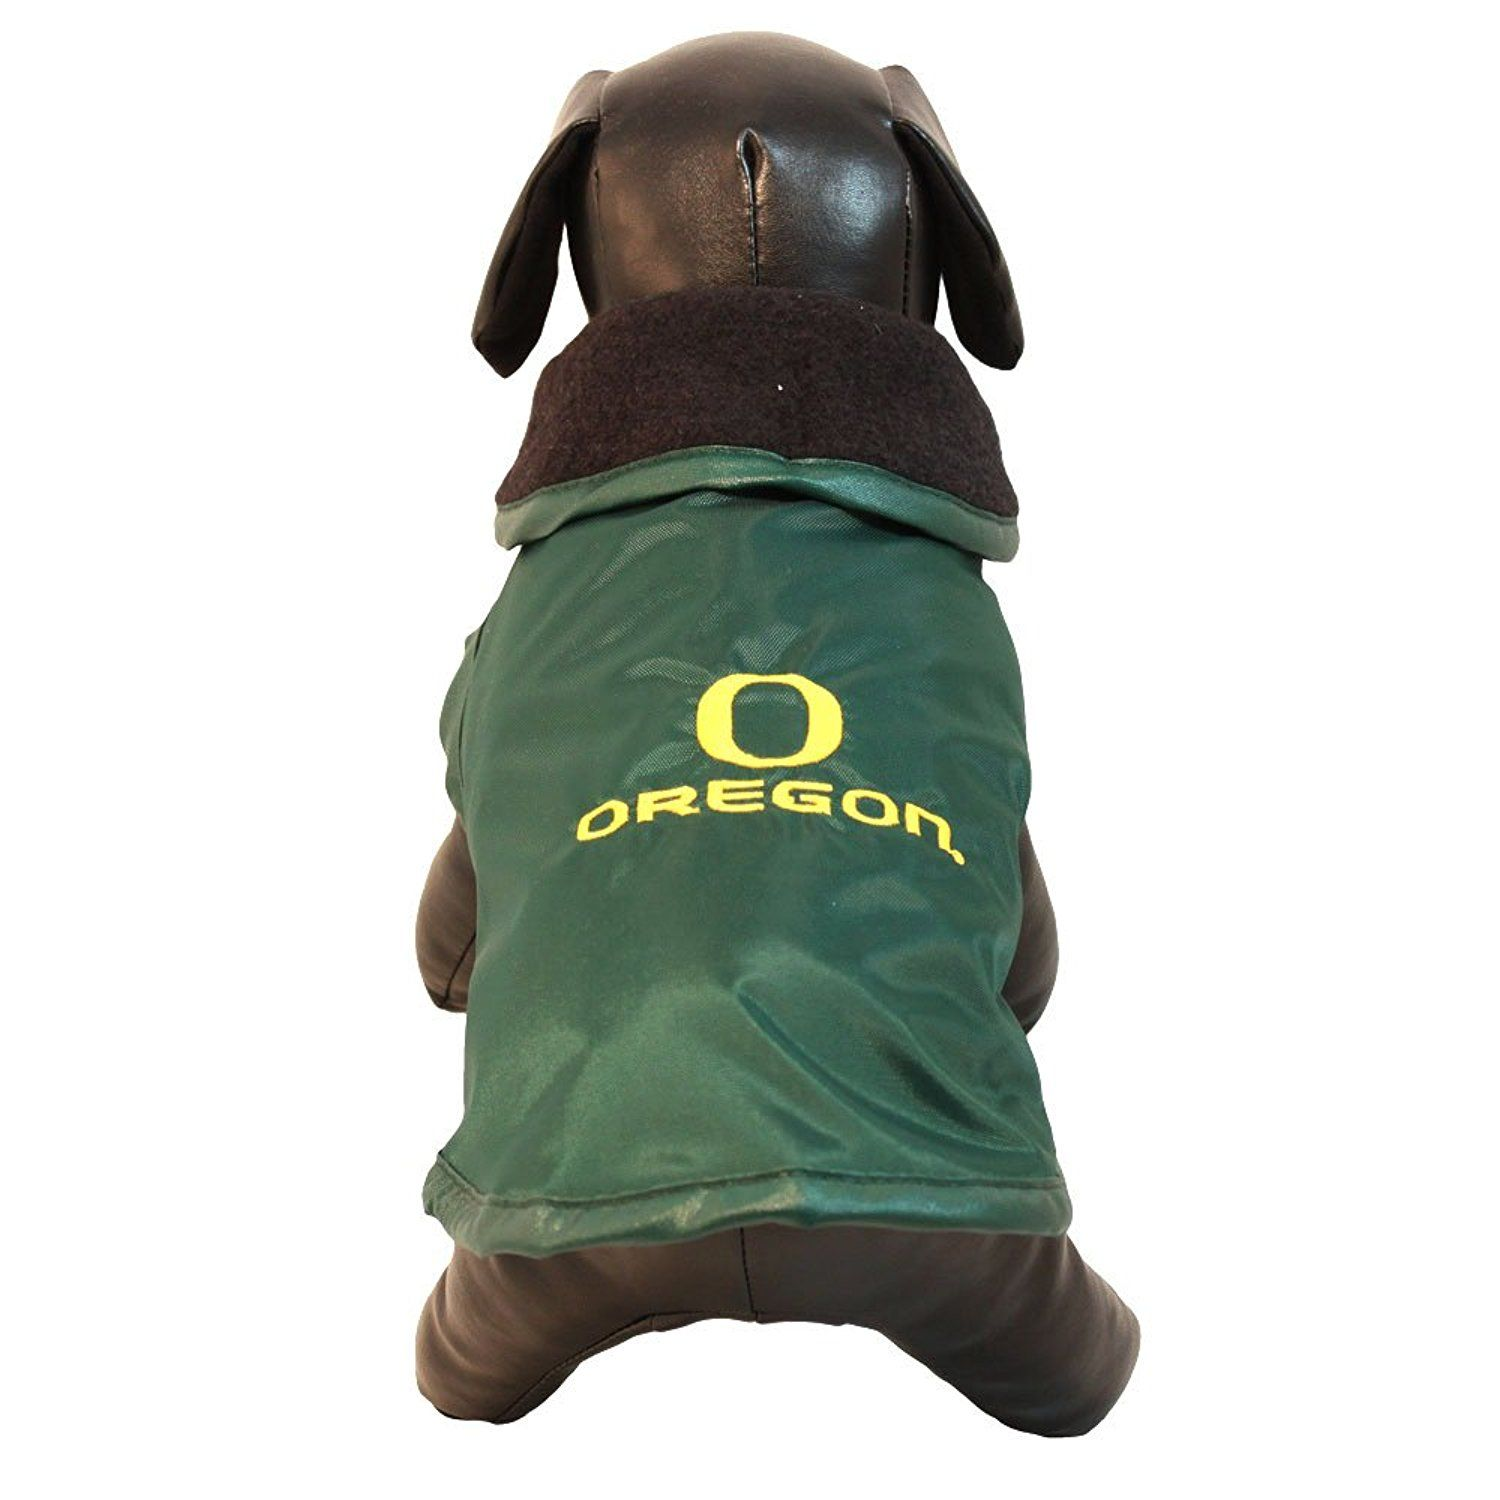 Ncaa Oregon Ducks All Weather Resistant Protective Dog Outerwear See This Great Image This Is An Amazon Aff Protective Dogs Dog Training Pads Dog Clothes [ 1500 x 1500 Pixel ]